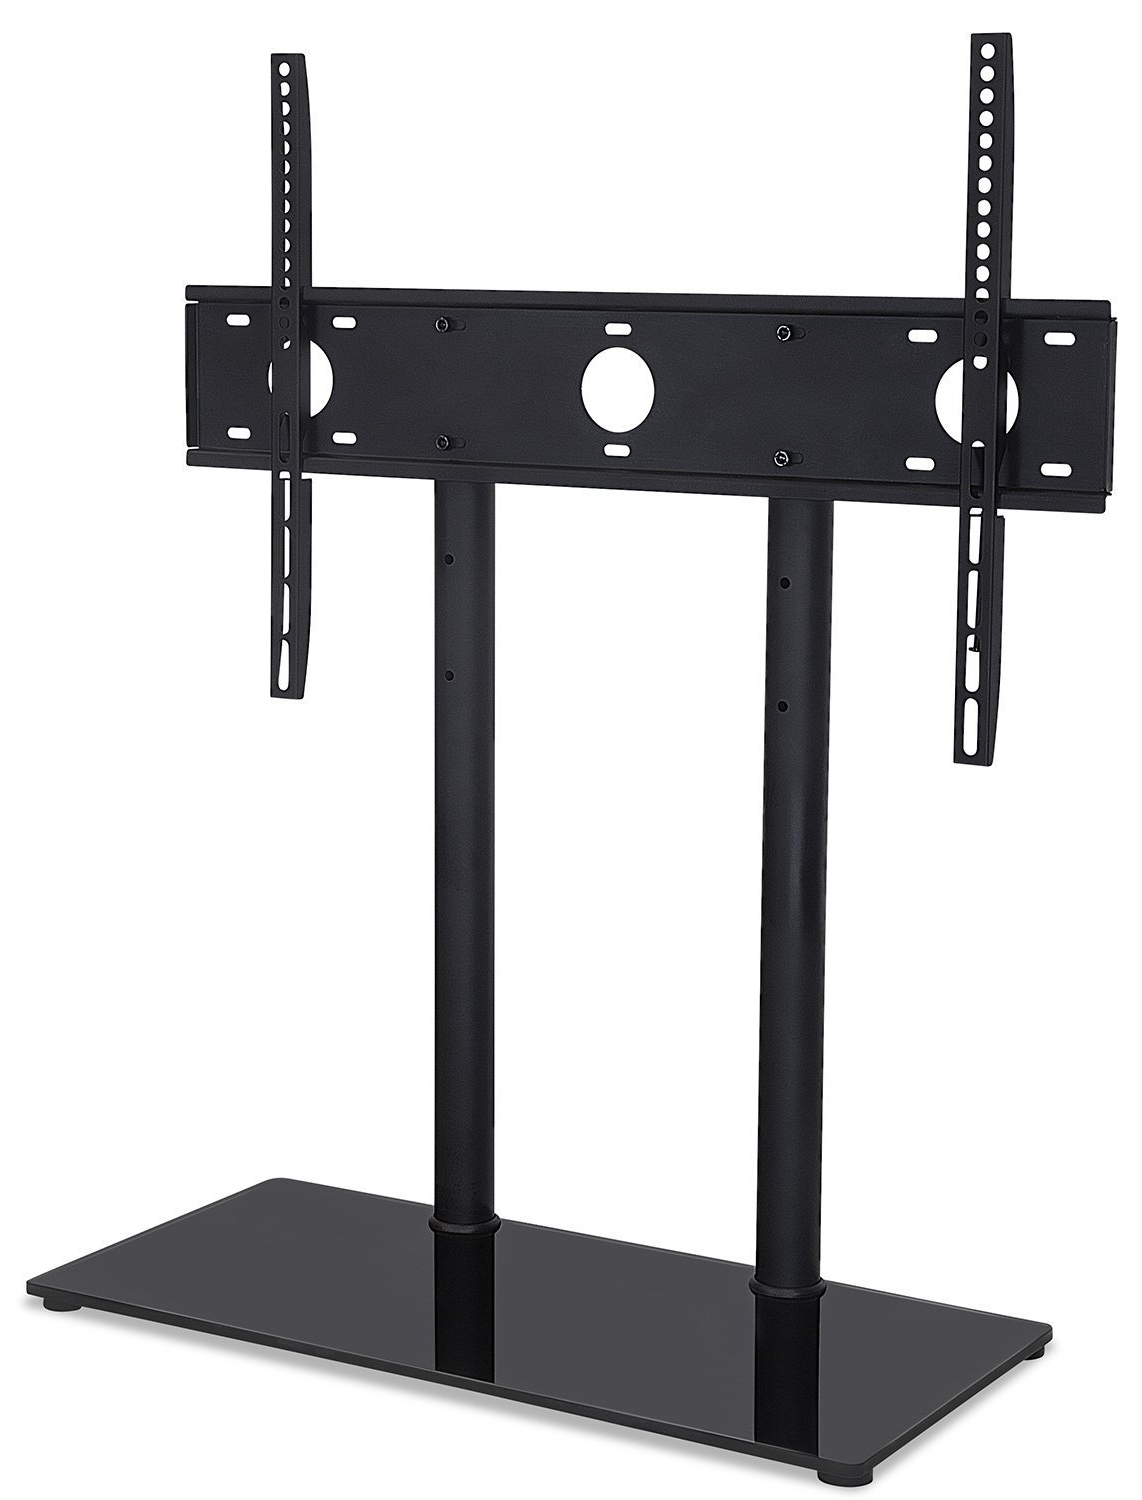 Mount It Universal Tabletop Tv Stand And Av Media Fixed Desktop Within Most Recently Released Tabletop Tv Stands (View 5 of 20)